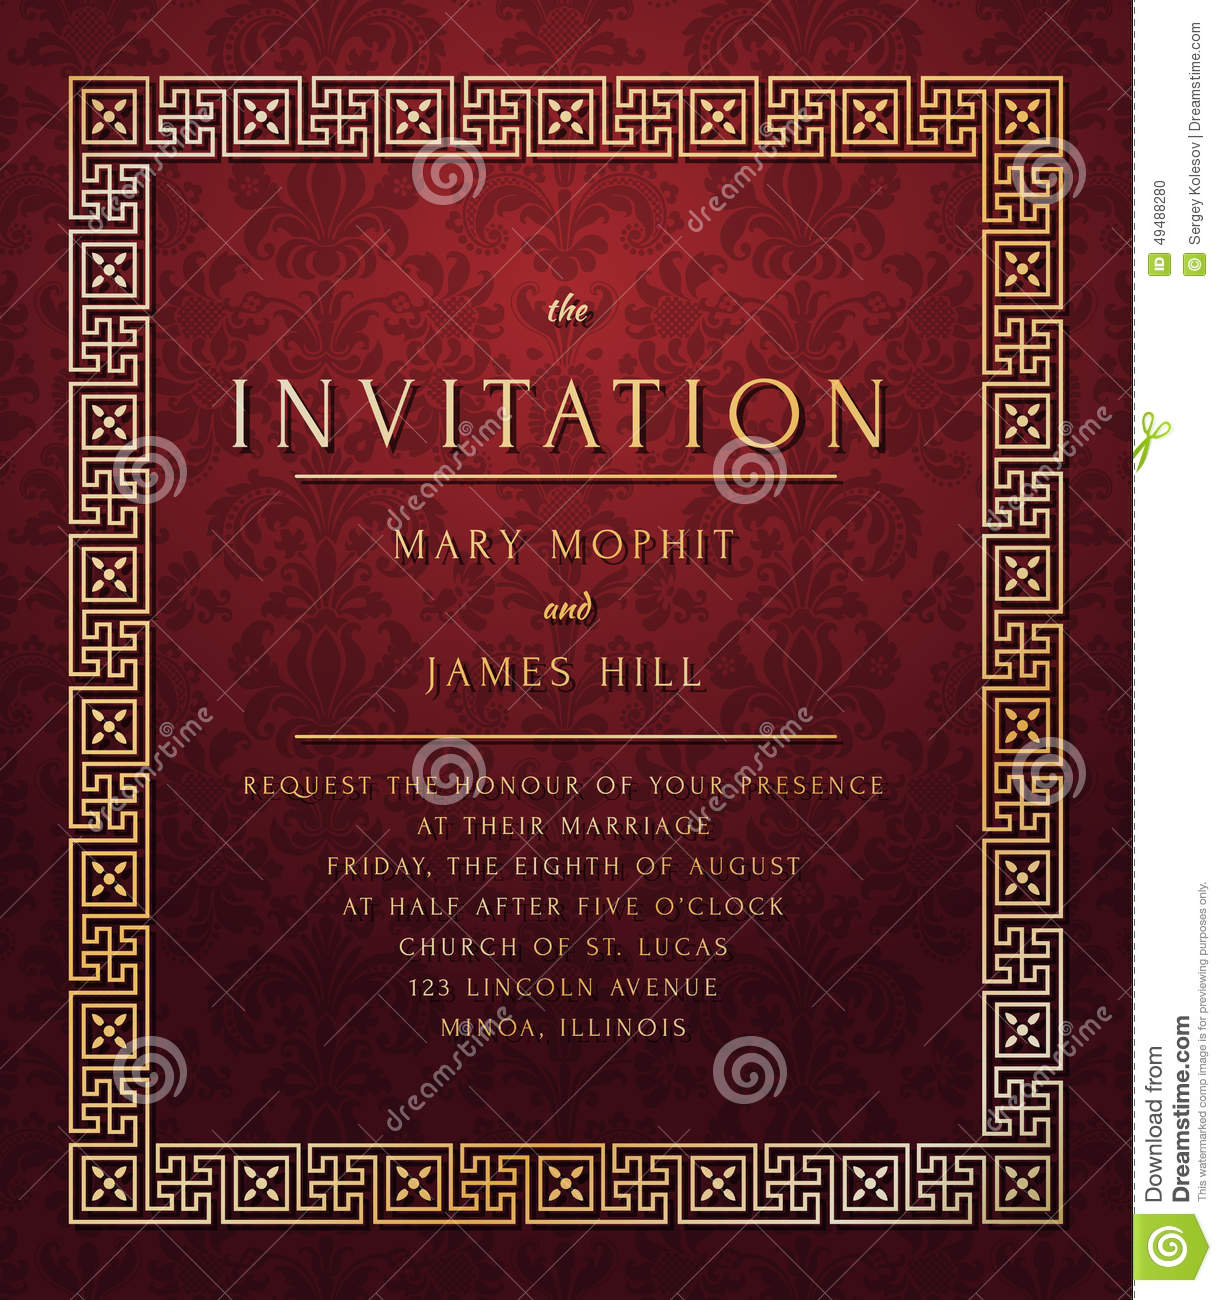 Vintage Template Wedding Invitation Stock Vector - Illustration of ...